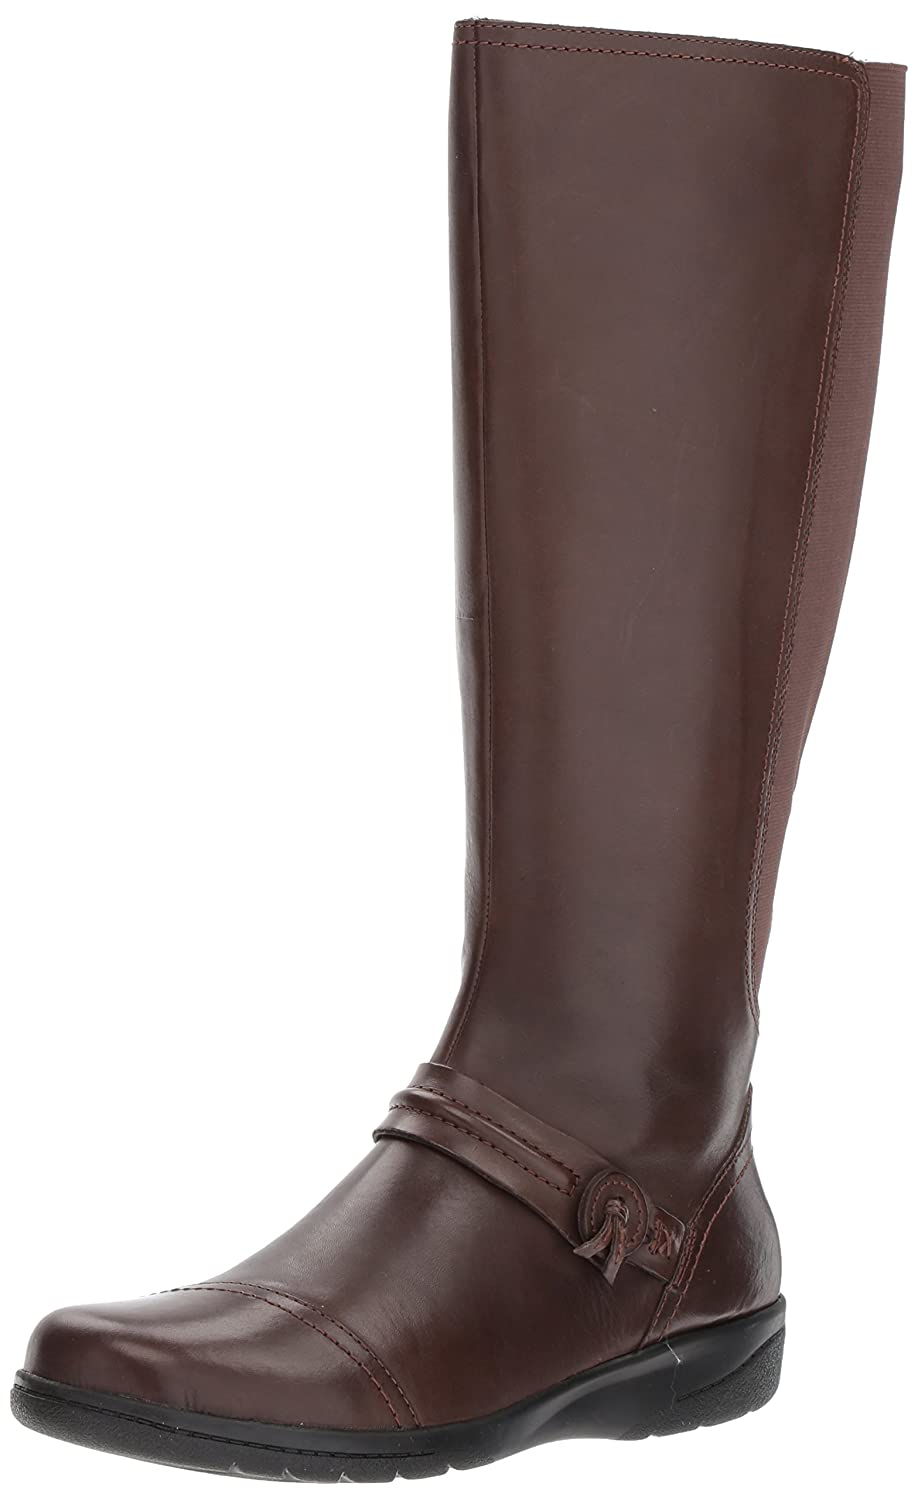 CLARKS Women's Cheyn Whisk Riding Boot B01MR3257X 6 W US|Dark Brown